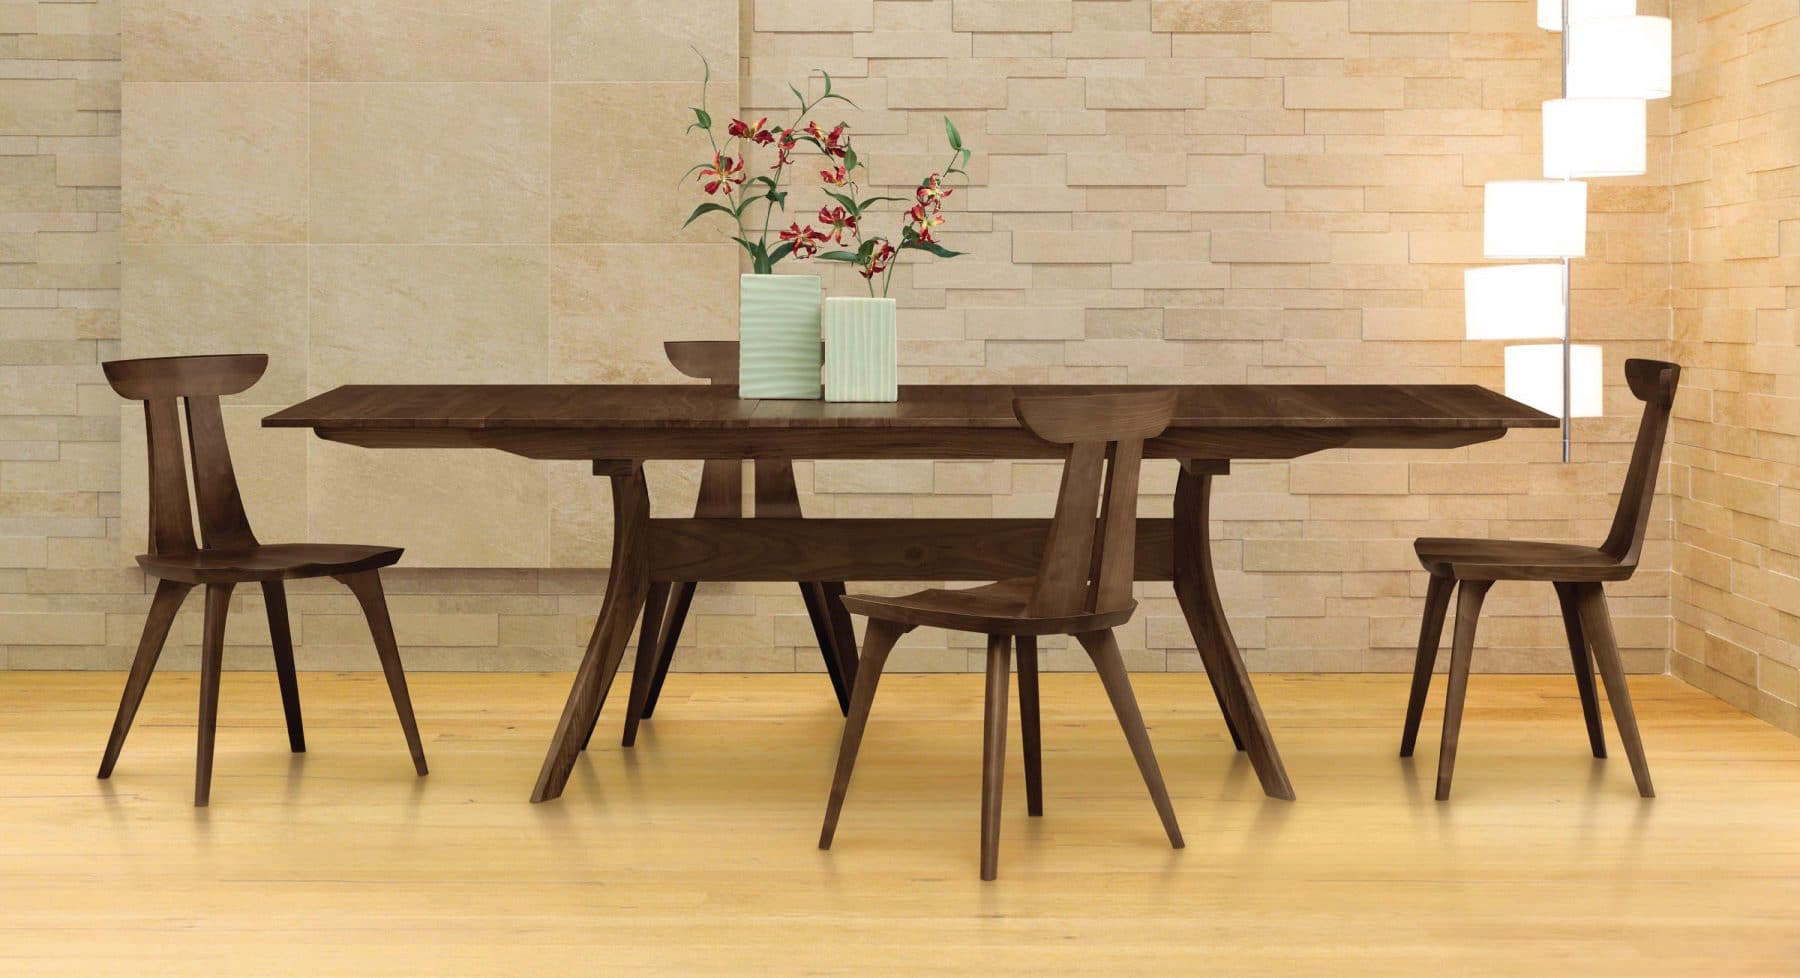 Audrey Extension Table and Estelle Chairs by Copeland